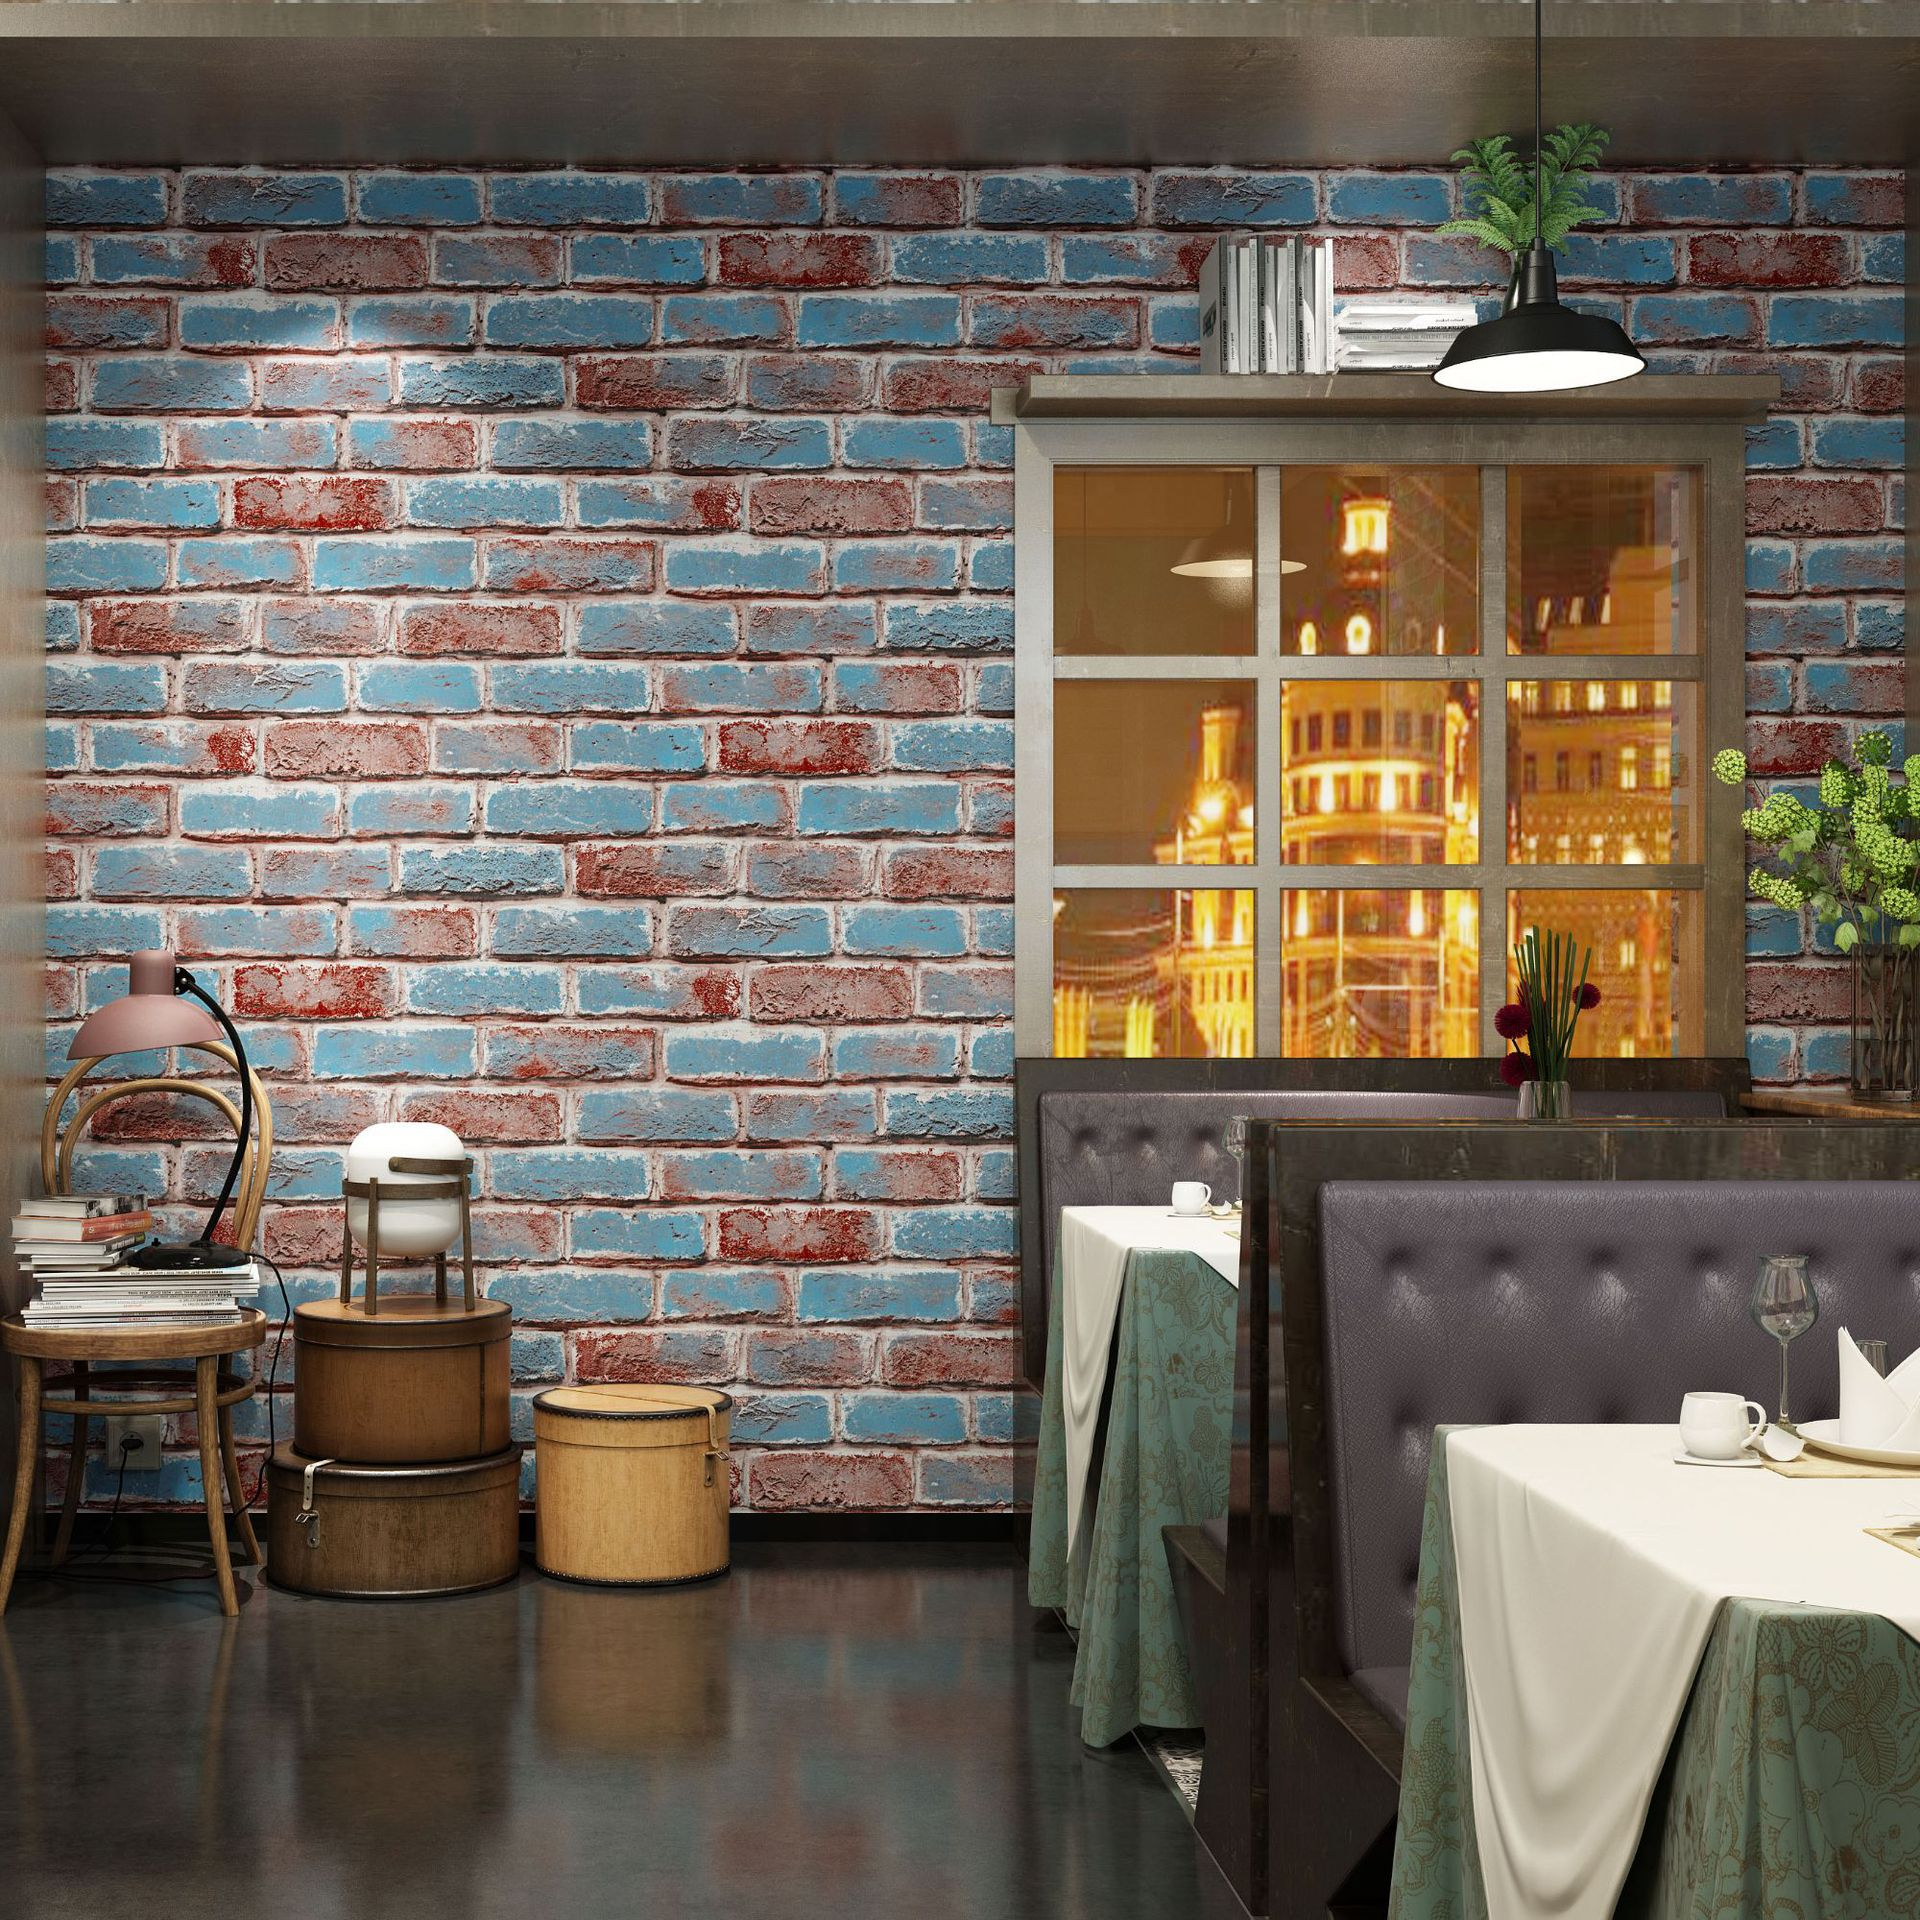 Retro Nostalgic 3D Faux Brick Pattern Bricks Brick Wallpaper Internet Cafe Restaurant Cafe Bar Red Brick Wallpaper